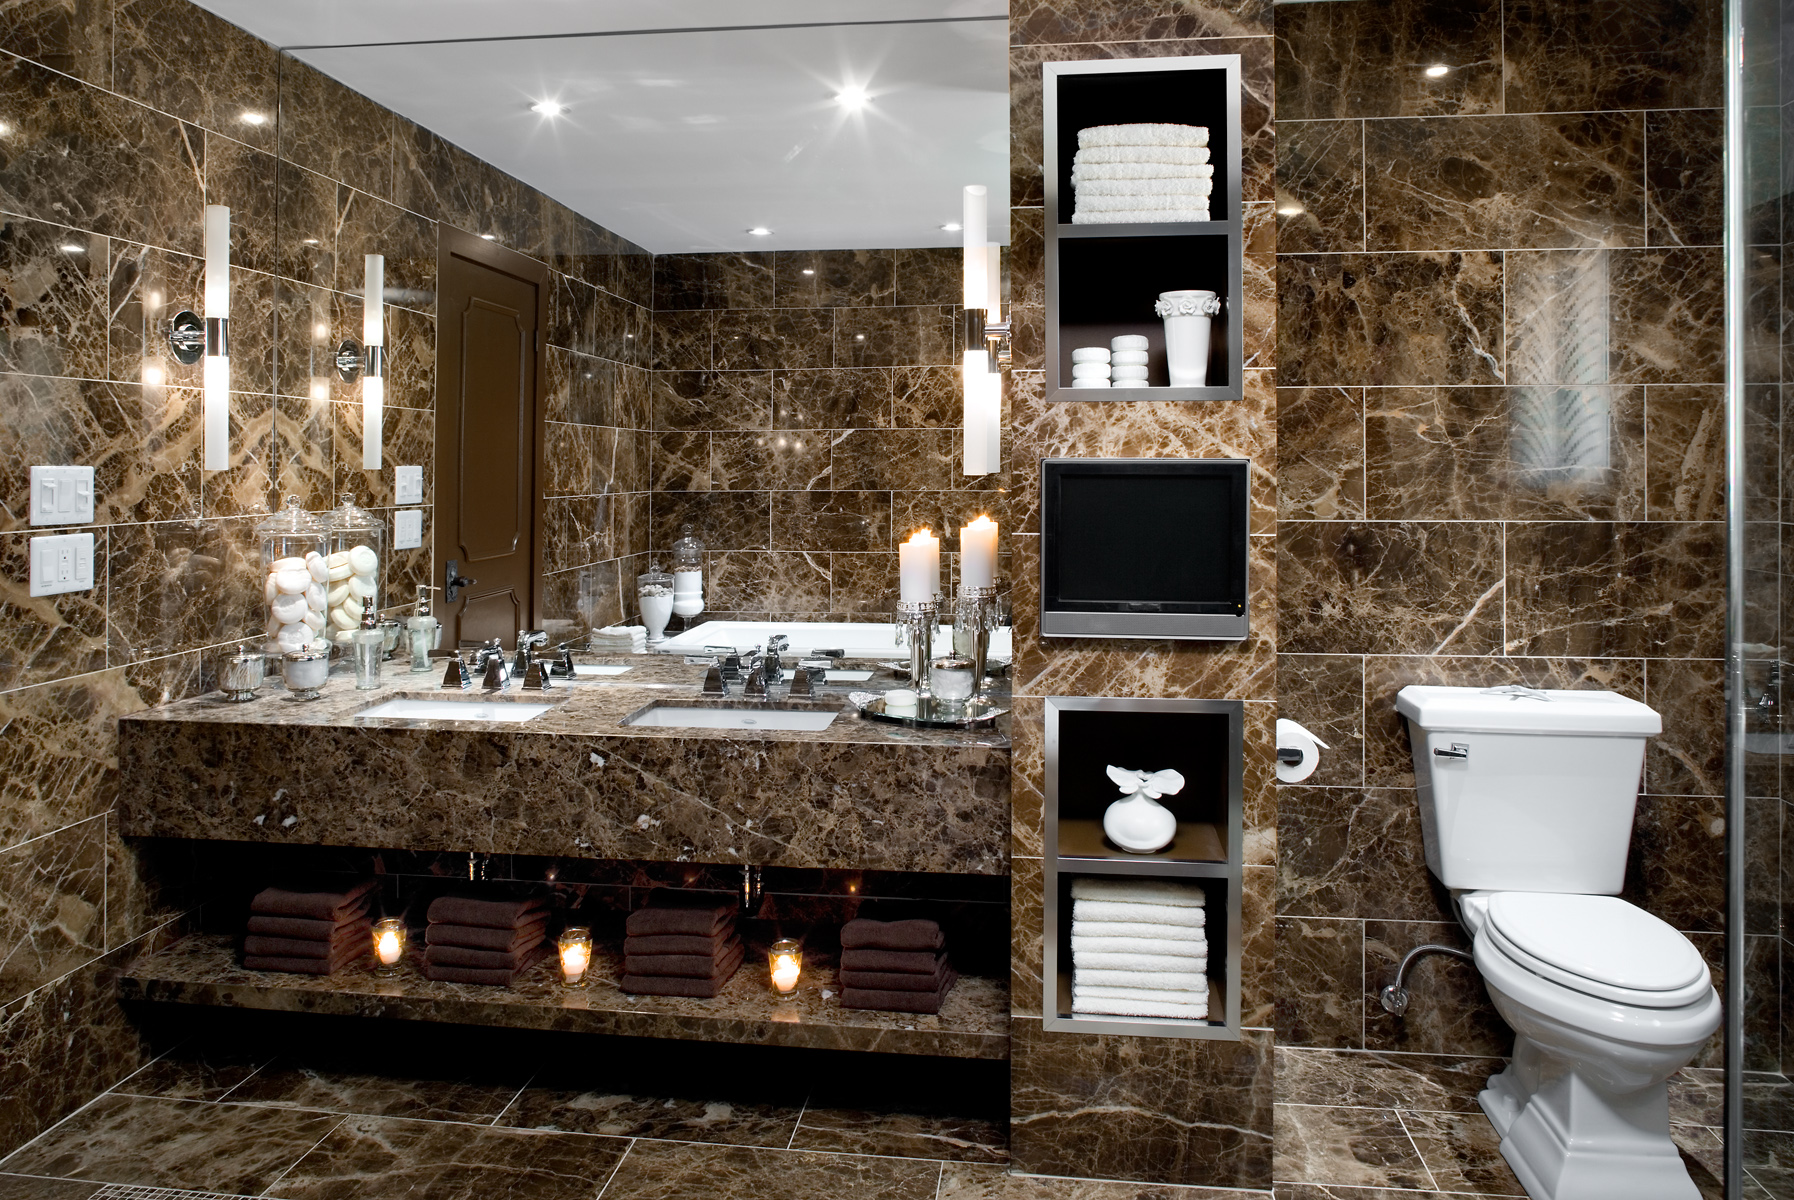 5 star bathroom designs - How